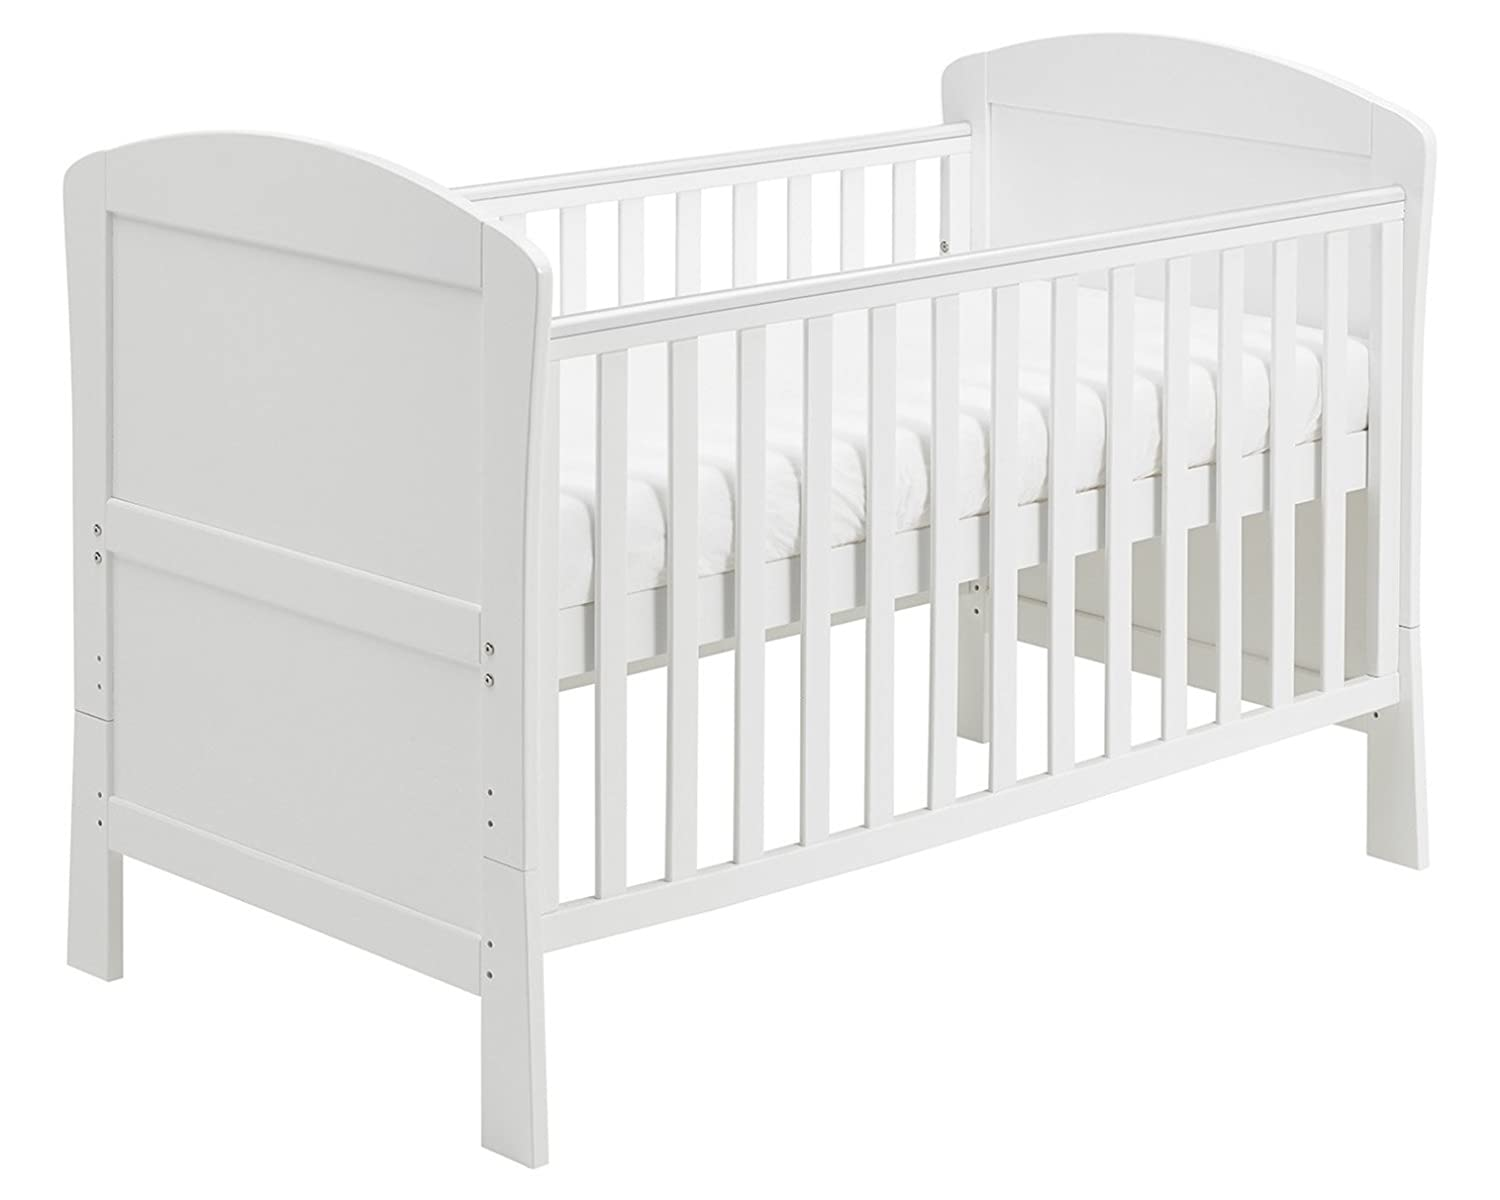 Babymore Aston Drop Side Cot Bed (White) with Foam Mattress 2610202M